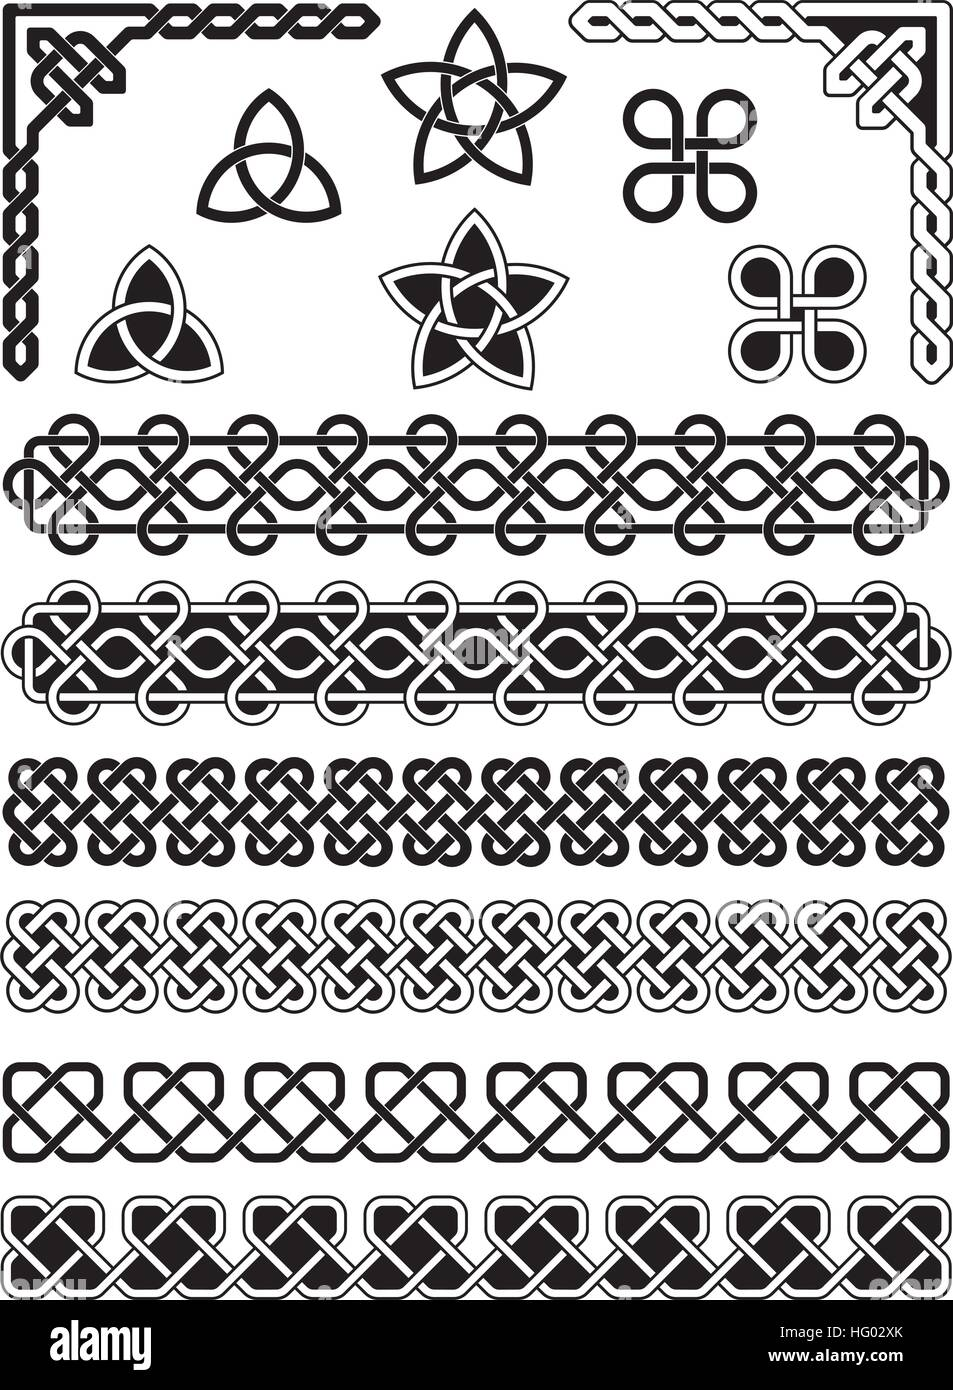 Celtic knotted, weaved and braided elements with borders, corners and embellishments - Stock Vector